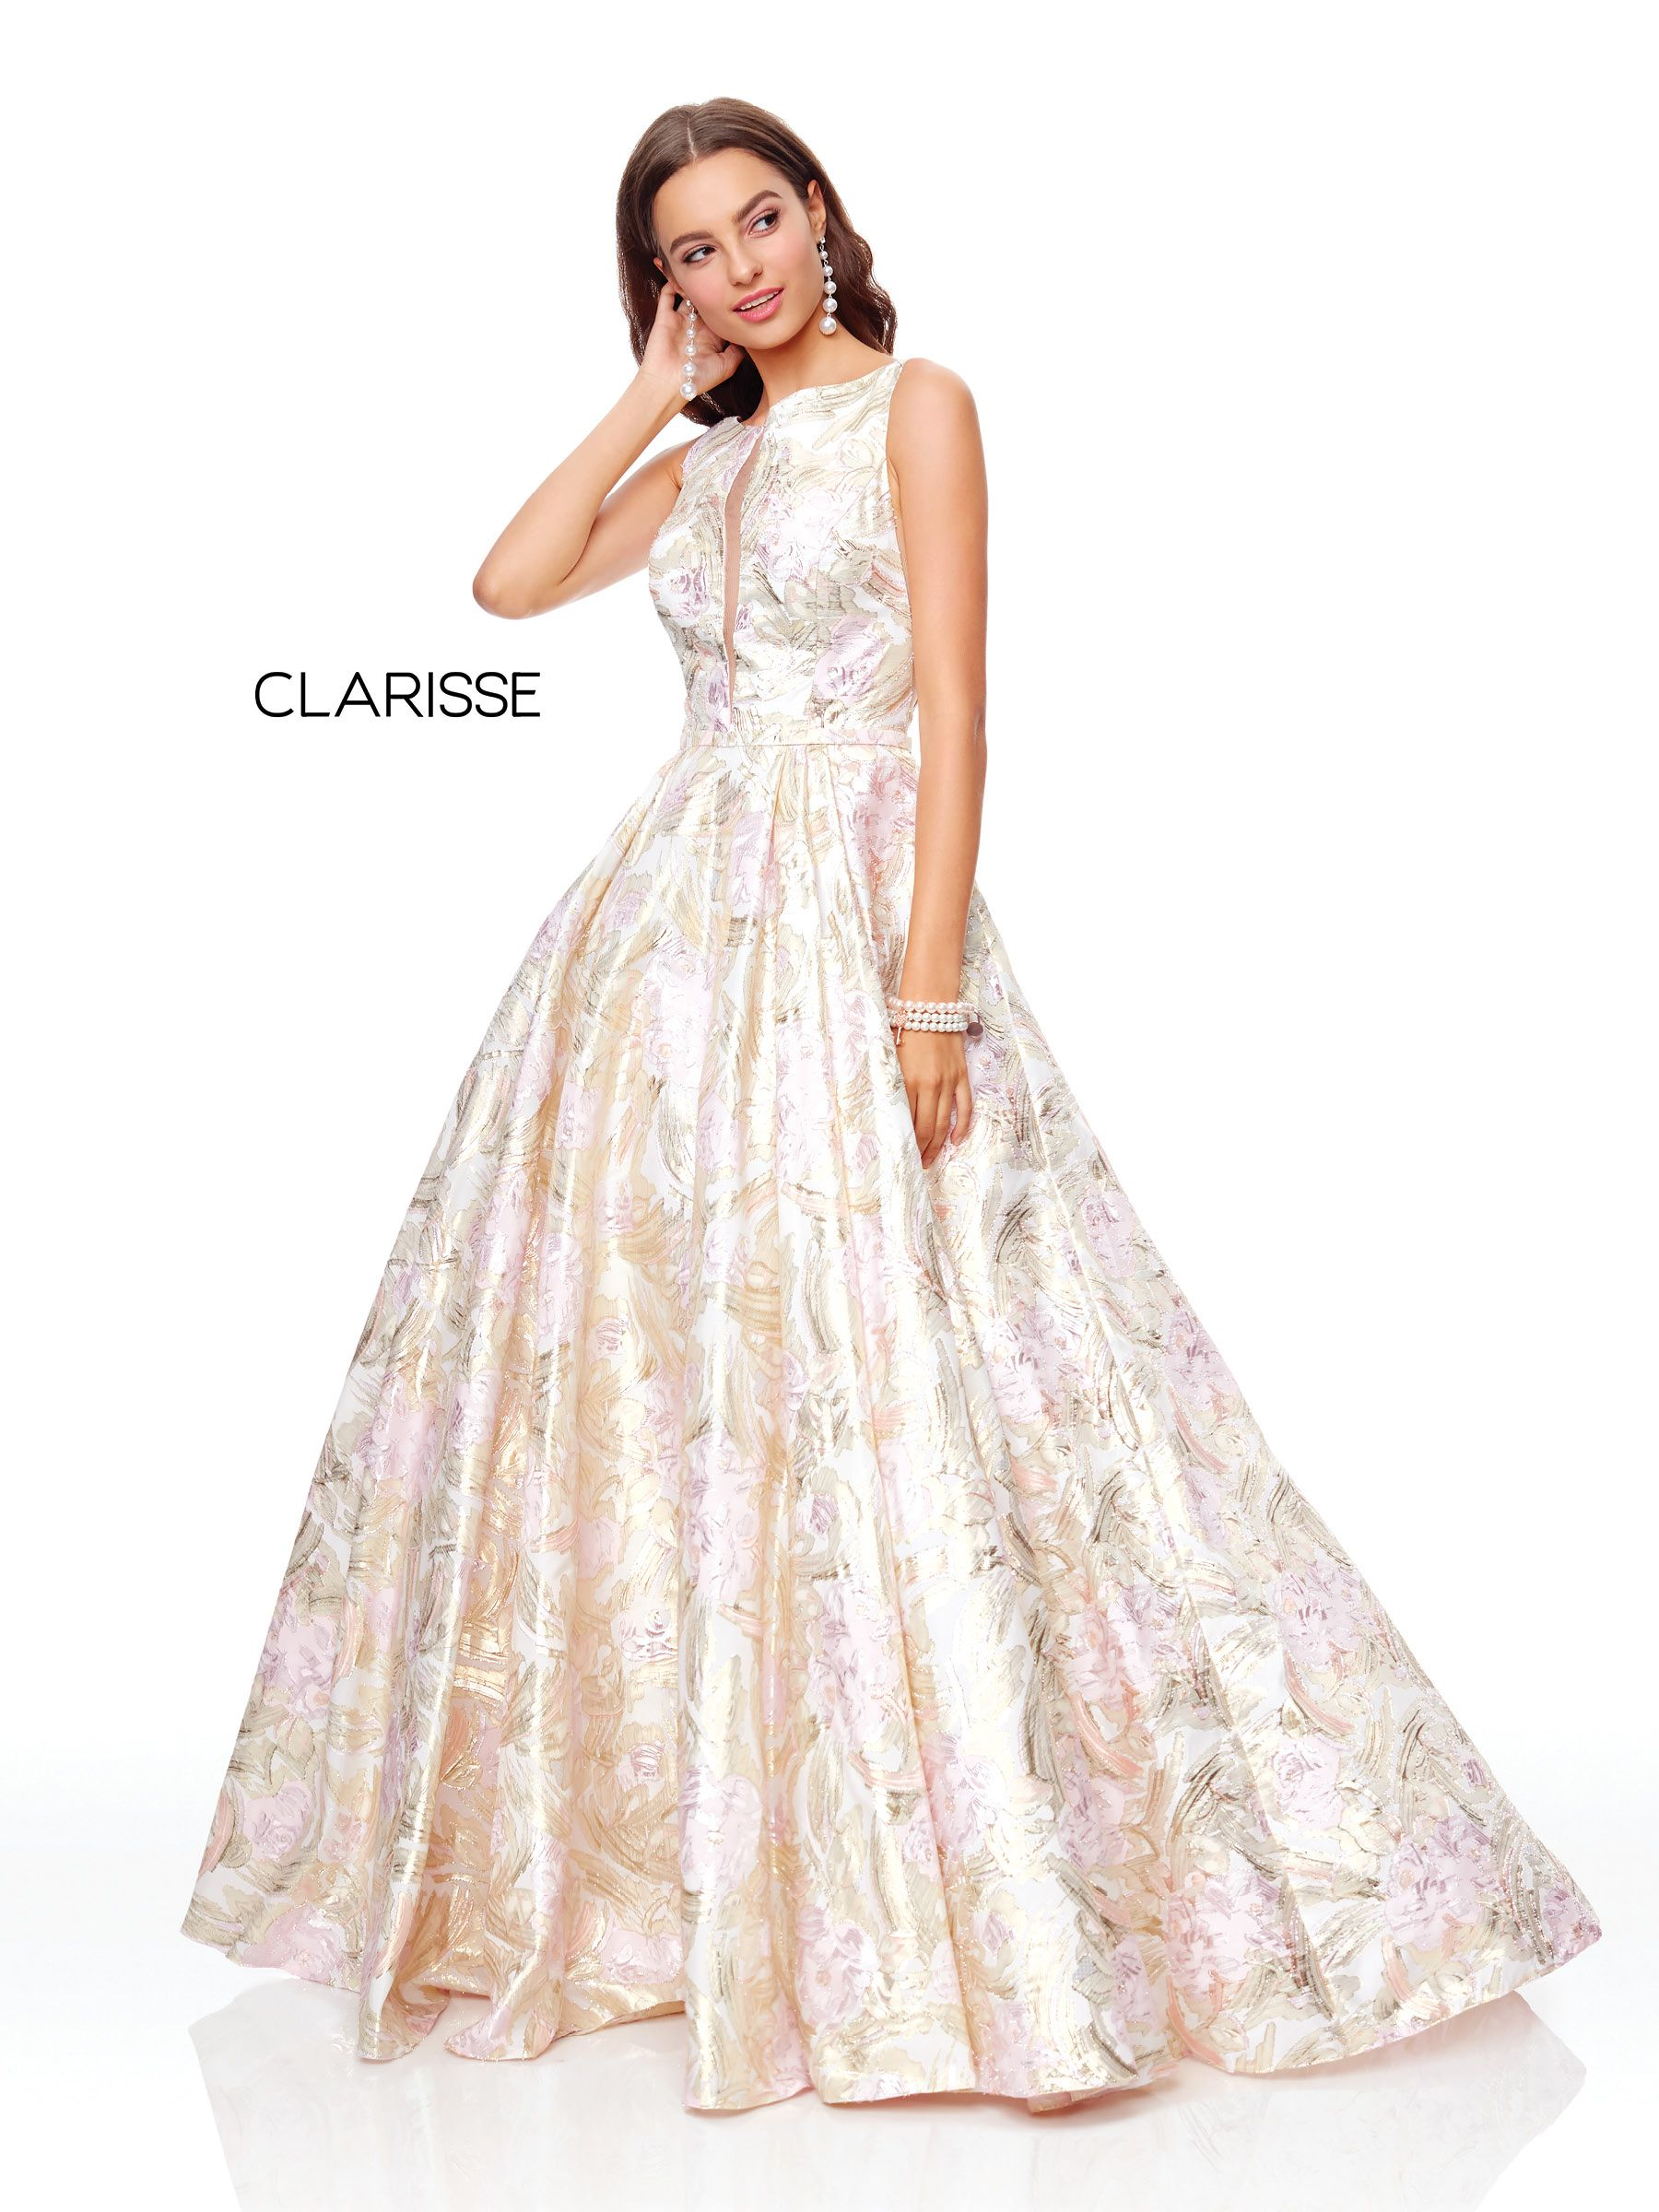 pink and gold floral print ball gown with mesh sides and a